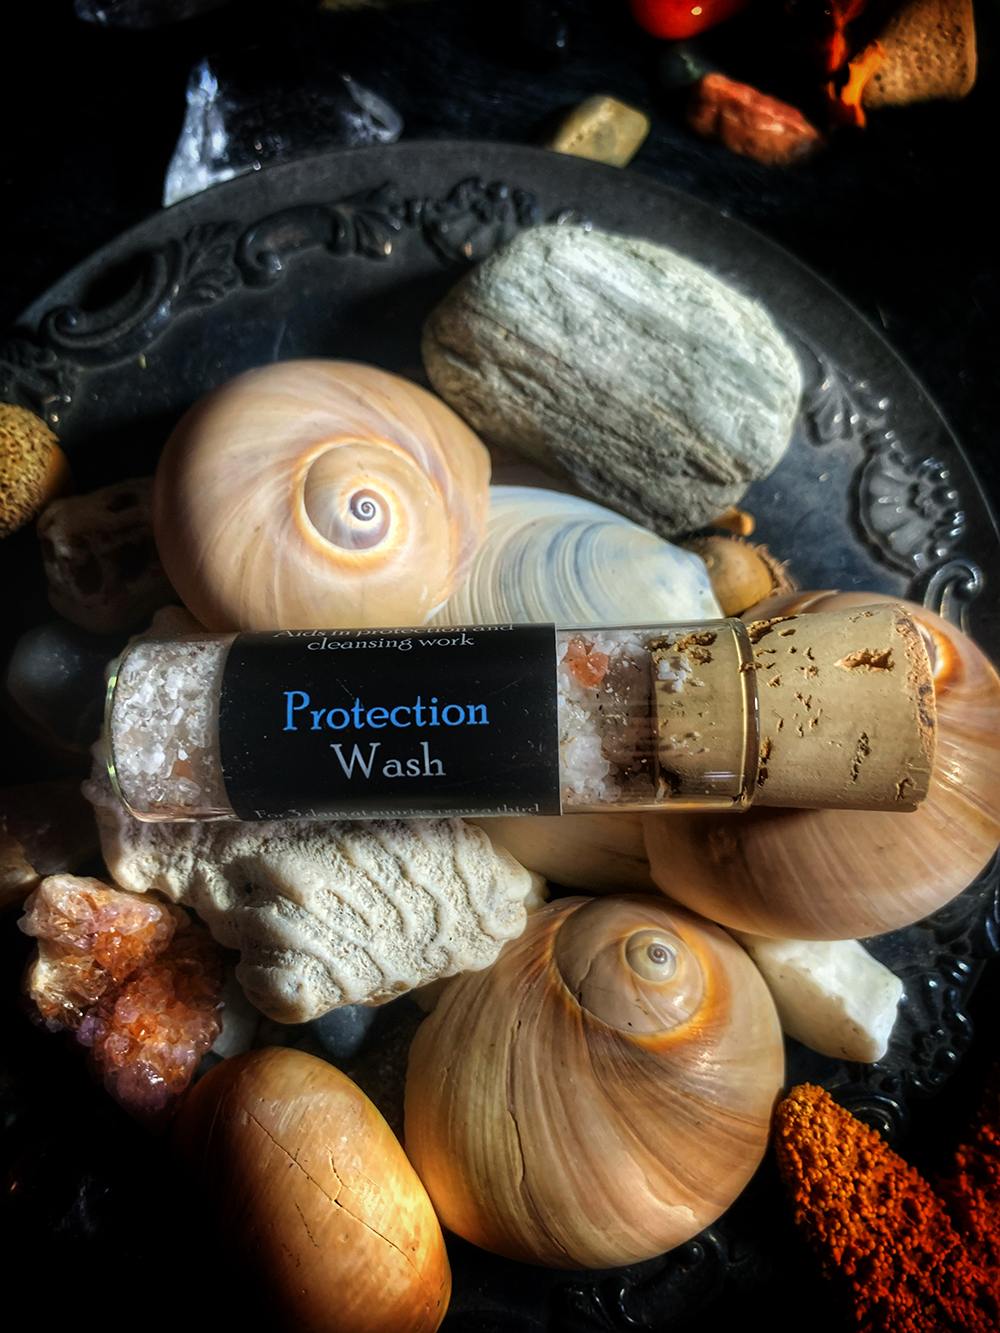 Protection Wash